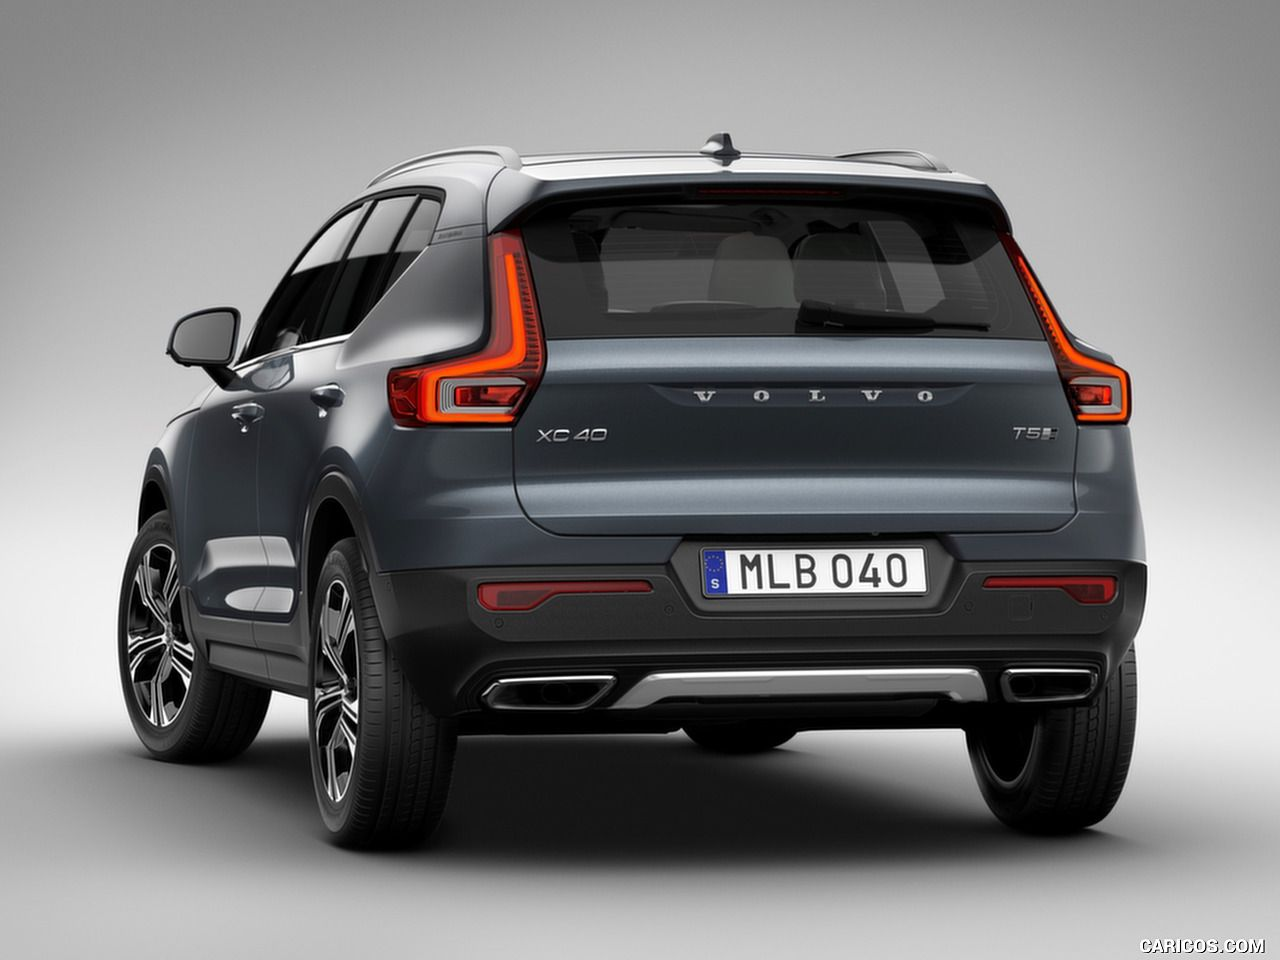 2019 Volvo XC40 Inscription Wallpaper CARS Volvo Volvo trucks 1280x960